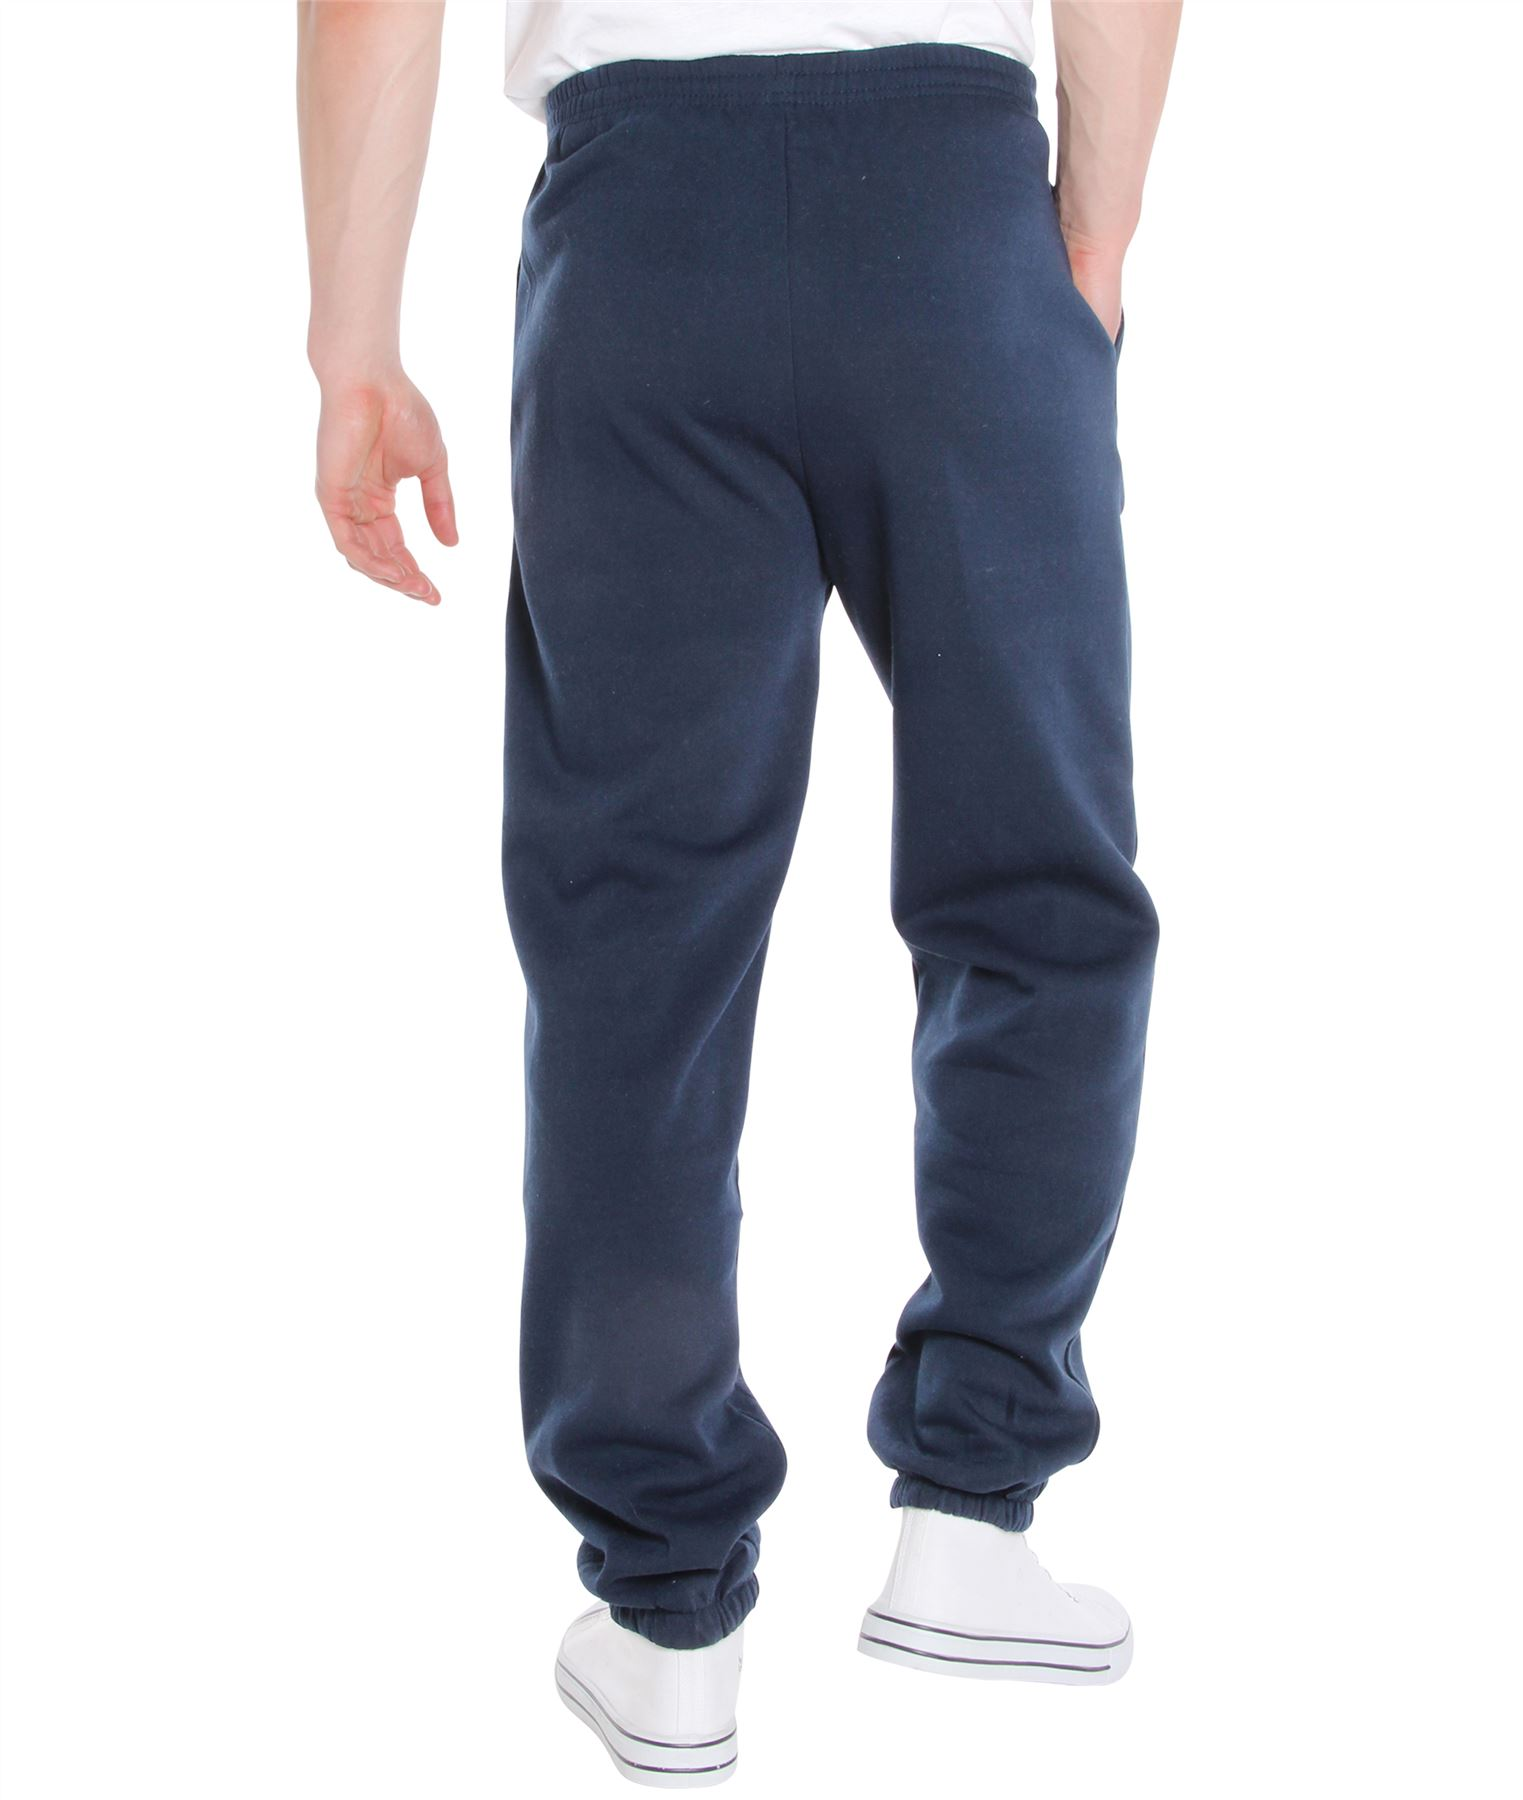 Mens-Tracksuit-Bottoms-Striped-Joggers-Jogging-Trousers-Fleece-Pants-Casual-Work thumbnail 31